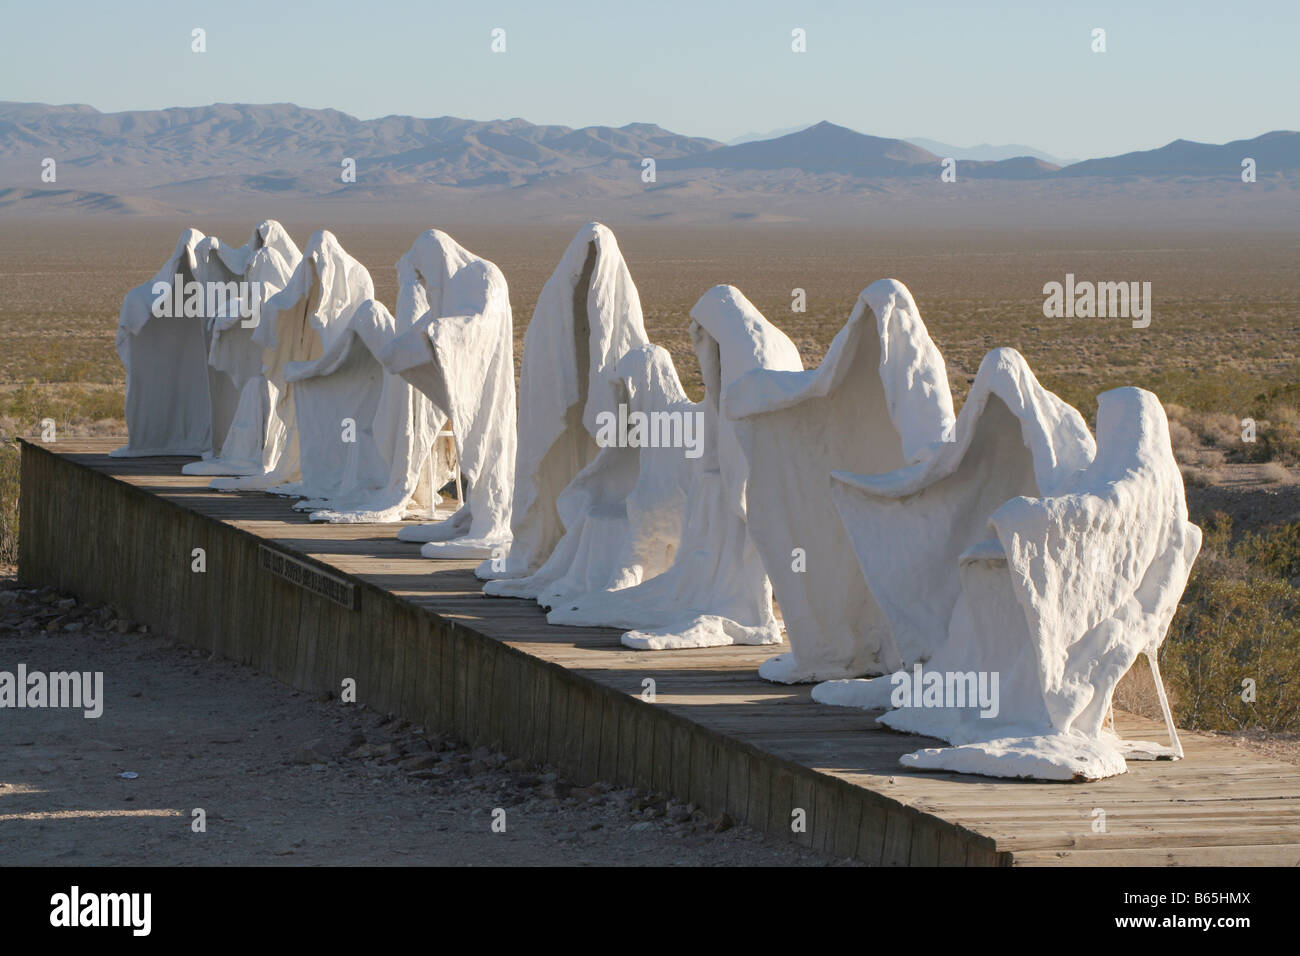 'The Last Supper' sculpture by Charles Albert Szukalski. At Rhyolite 'ghost town', Nevada, near - Stock Image